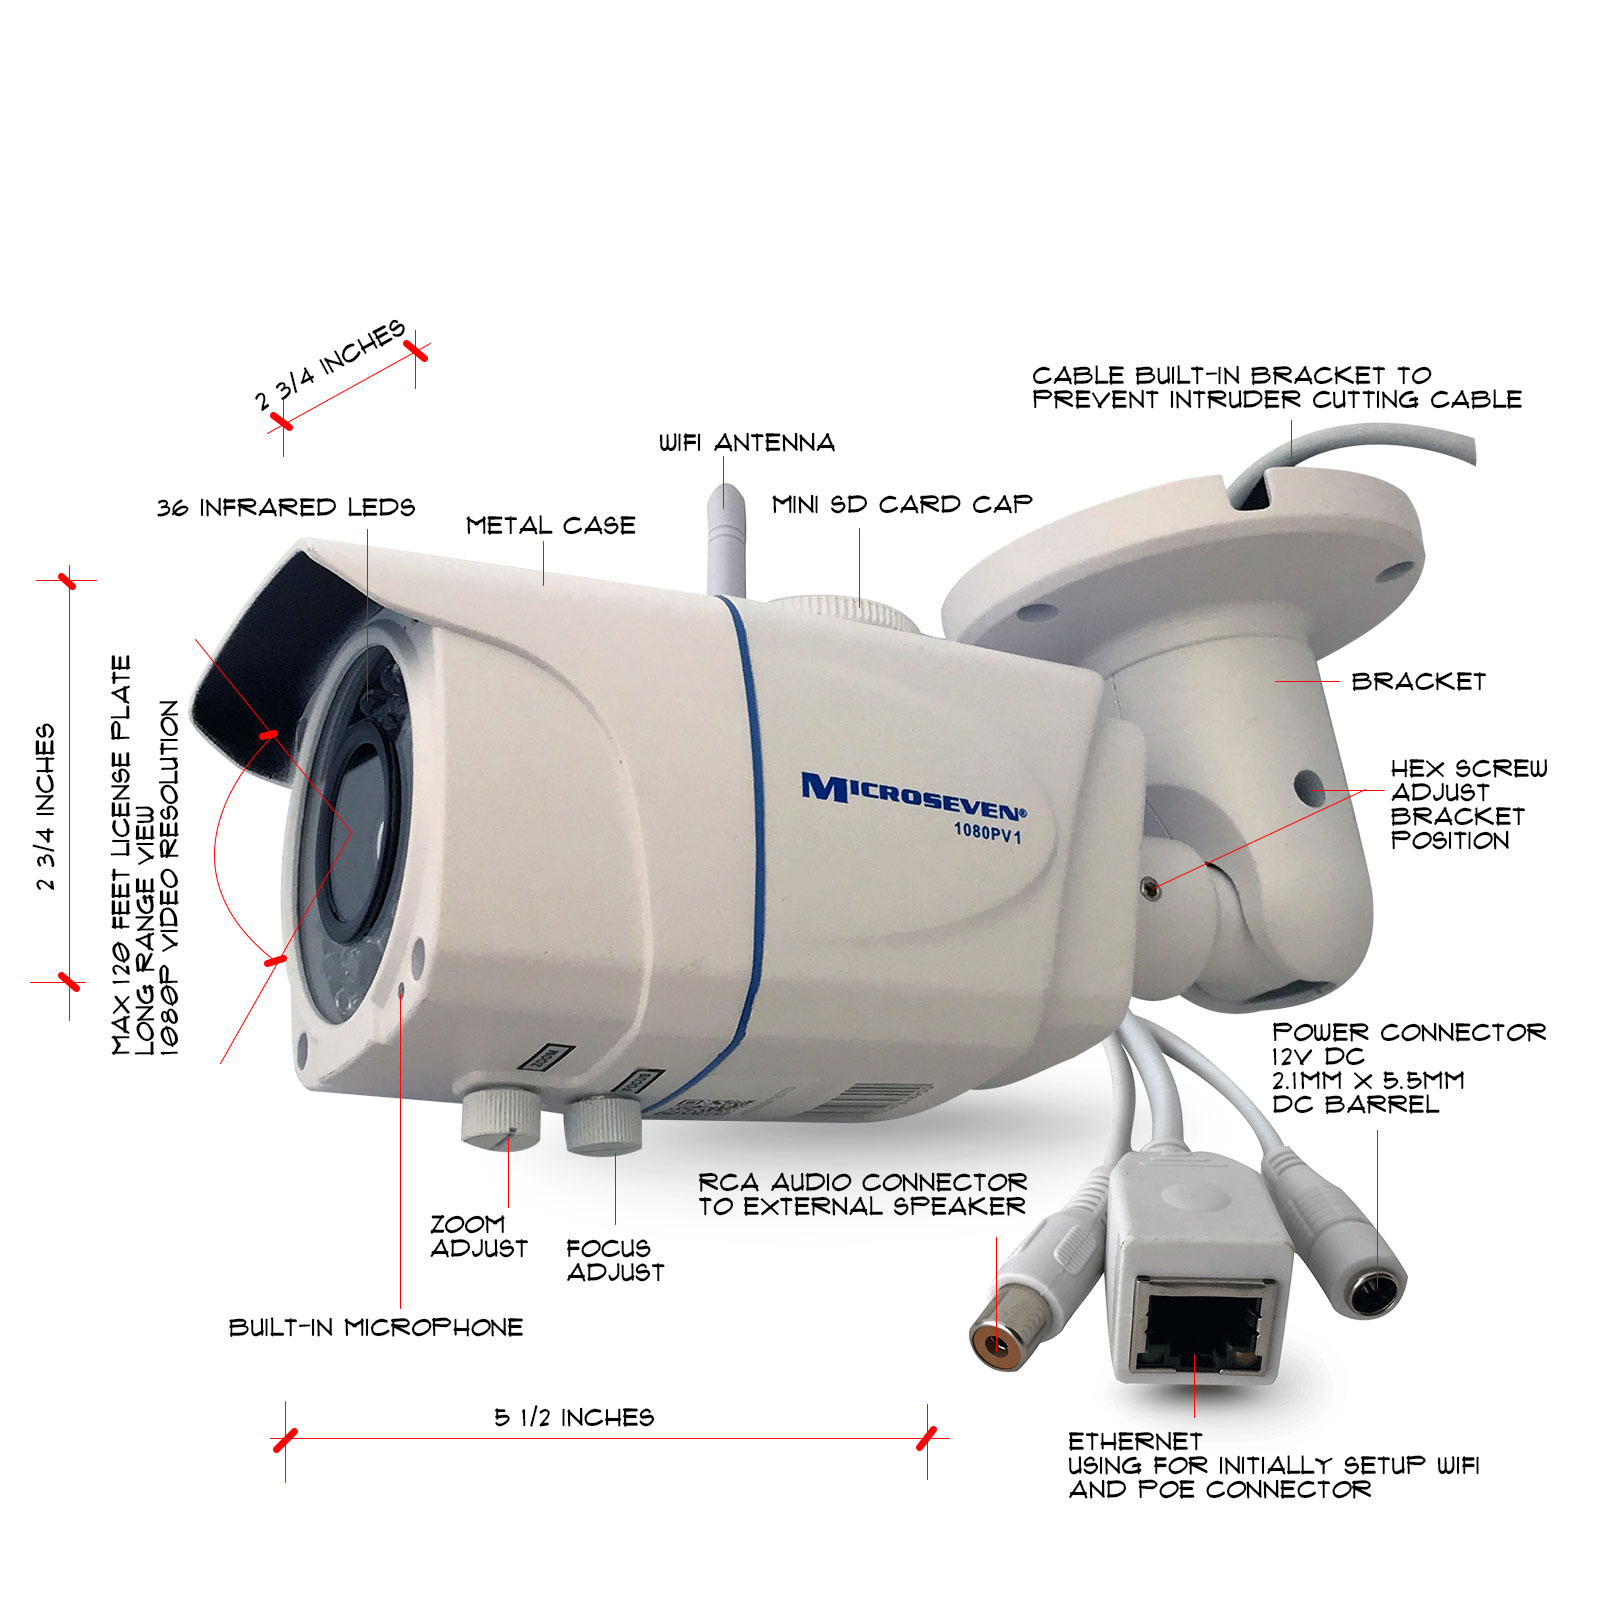 "M7B77-WPSV1 HD 1080P NEWEST SONY 1/2.8"" Chipset CMOS 3MP 6-22mm Varifocal Lens Plug and Play ONVIF Wireless Outdoor Security IP Camera 128GB SD Slot,Build-in POE, Built-in Microphone, Day & Night, Free M7 Cloud+Free Live Streaming on microseven.tv /Works with Amazon Alexa (With Built-in POE)"